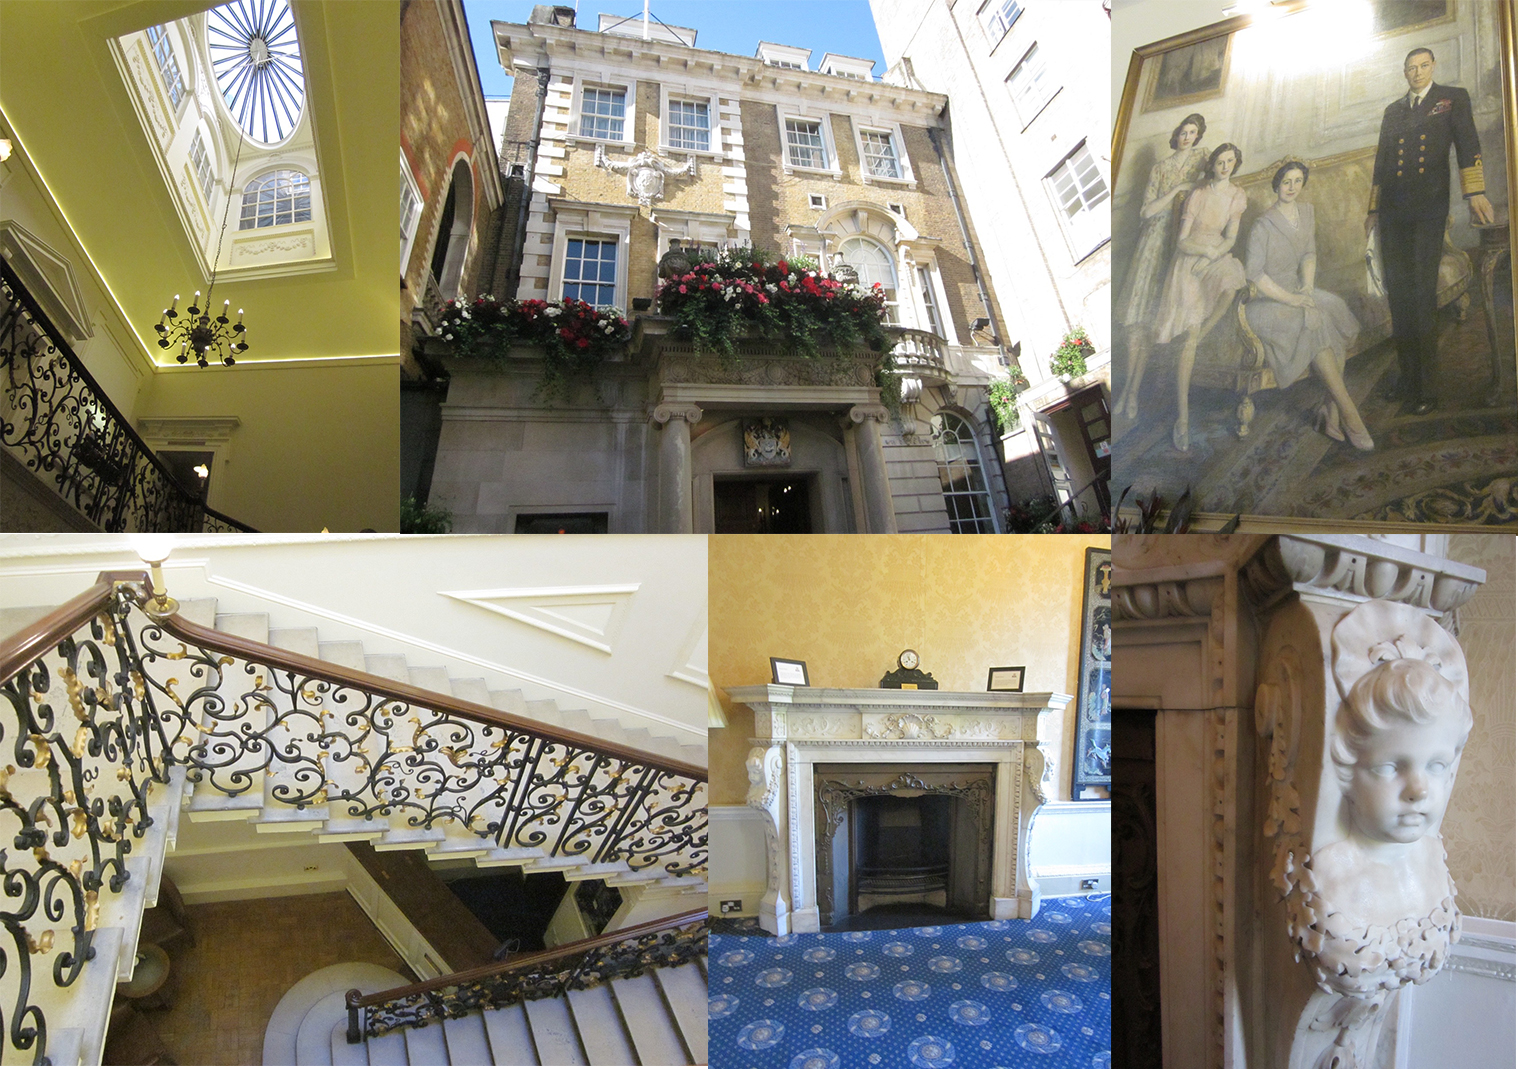 (Clockwise, L-R) The Lantern ceiling above the wrought iron staircase, the exterior of the Royal Overseas League, Queen Elizabeth's reputedly favorite family portrait, possible likeness of the Duchess of Rutland's lost brother?, the Duchess of Rutland's fireplace in her dressing room, the wrought iron staircase.